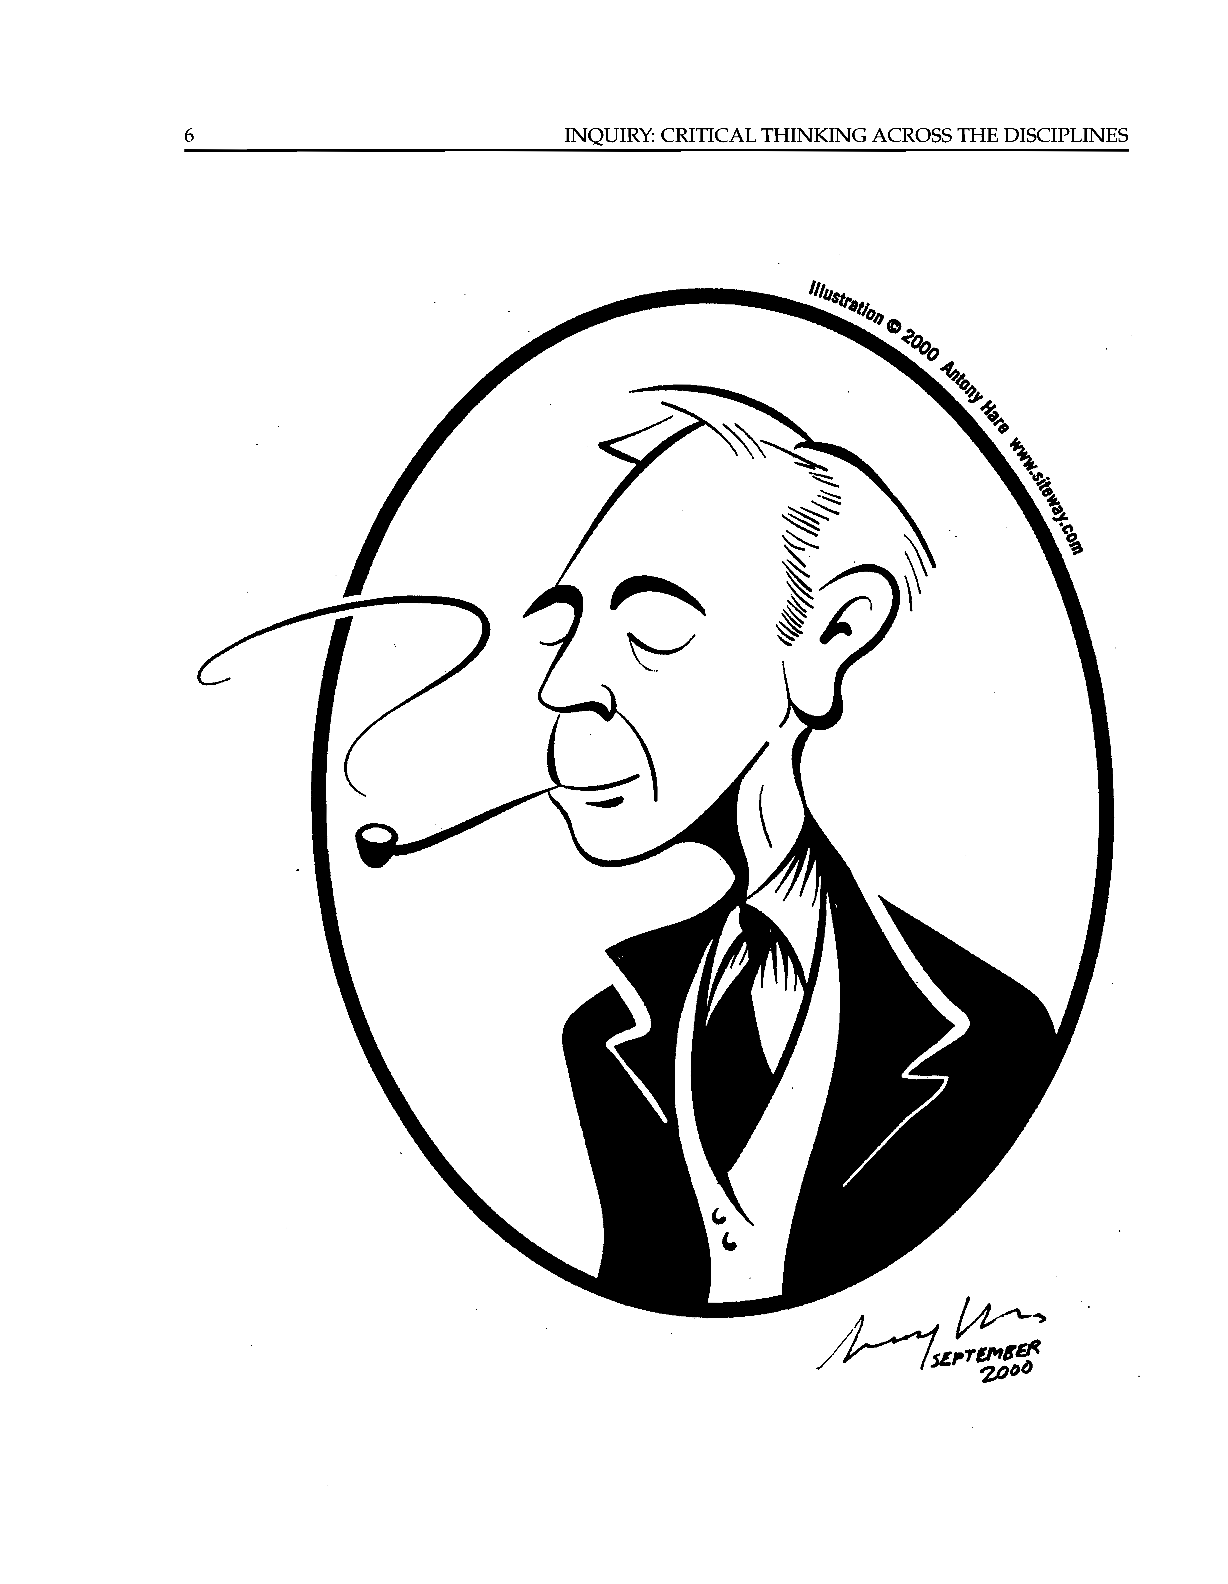 Russell Caricature - Antony Hare - Inquiry: Critical